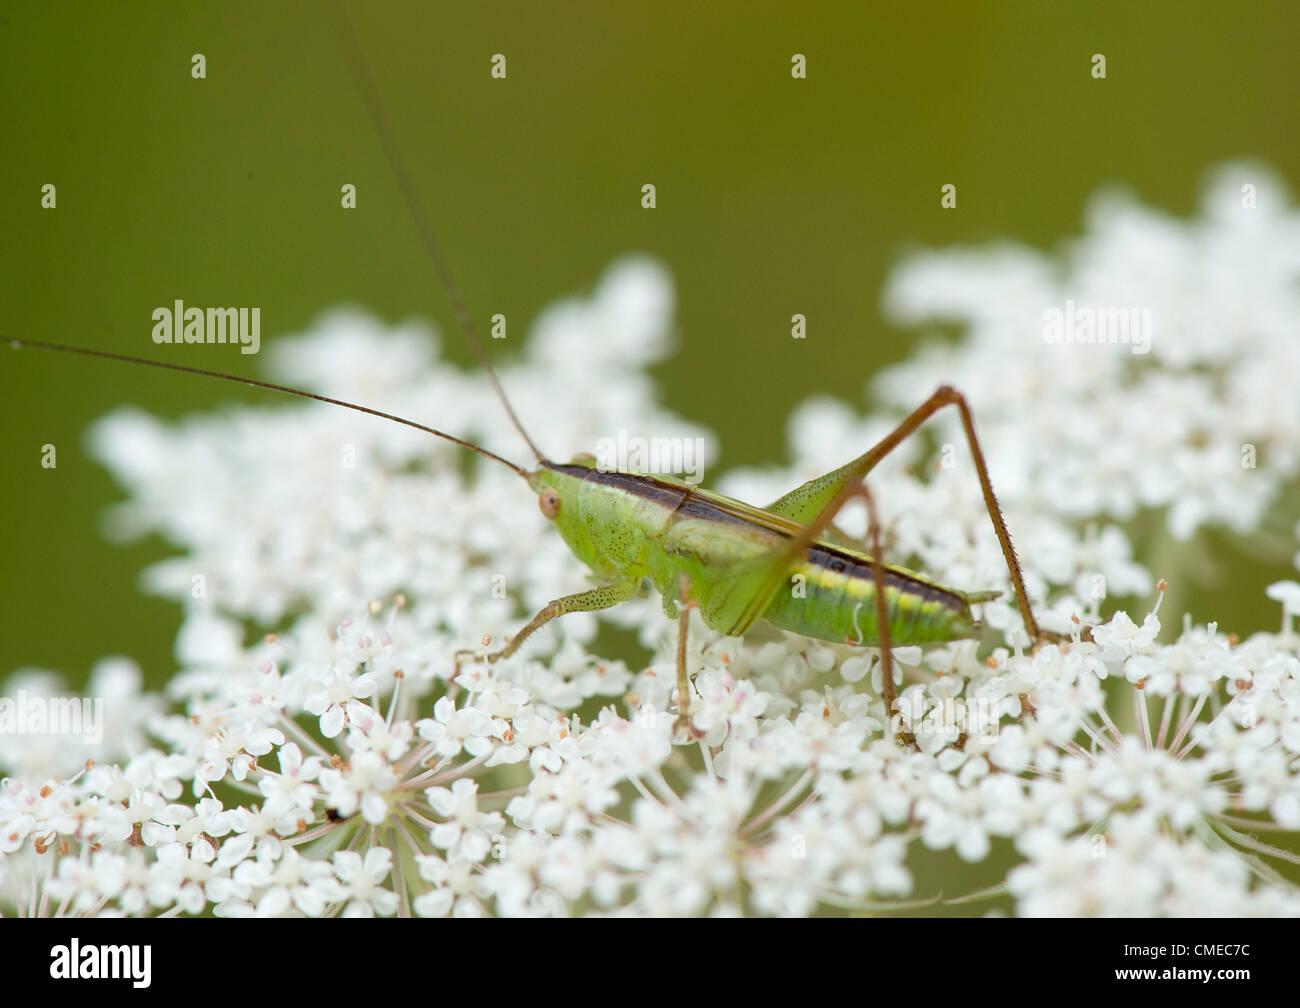 July 29 2012 Roseburg Oregon U S A Jumping Insect Perches On